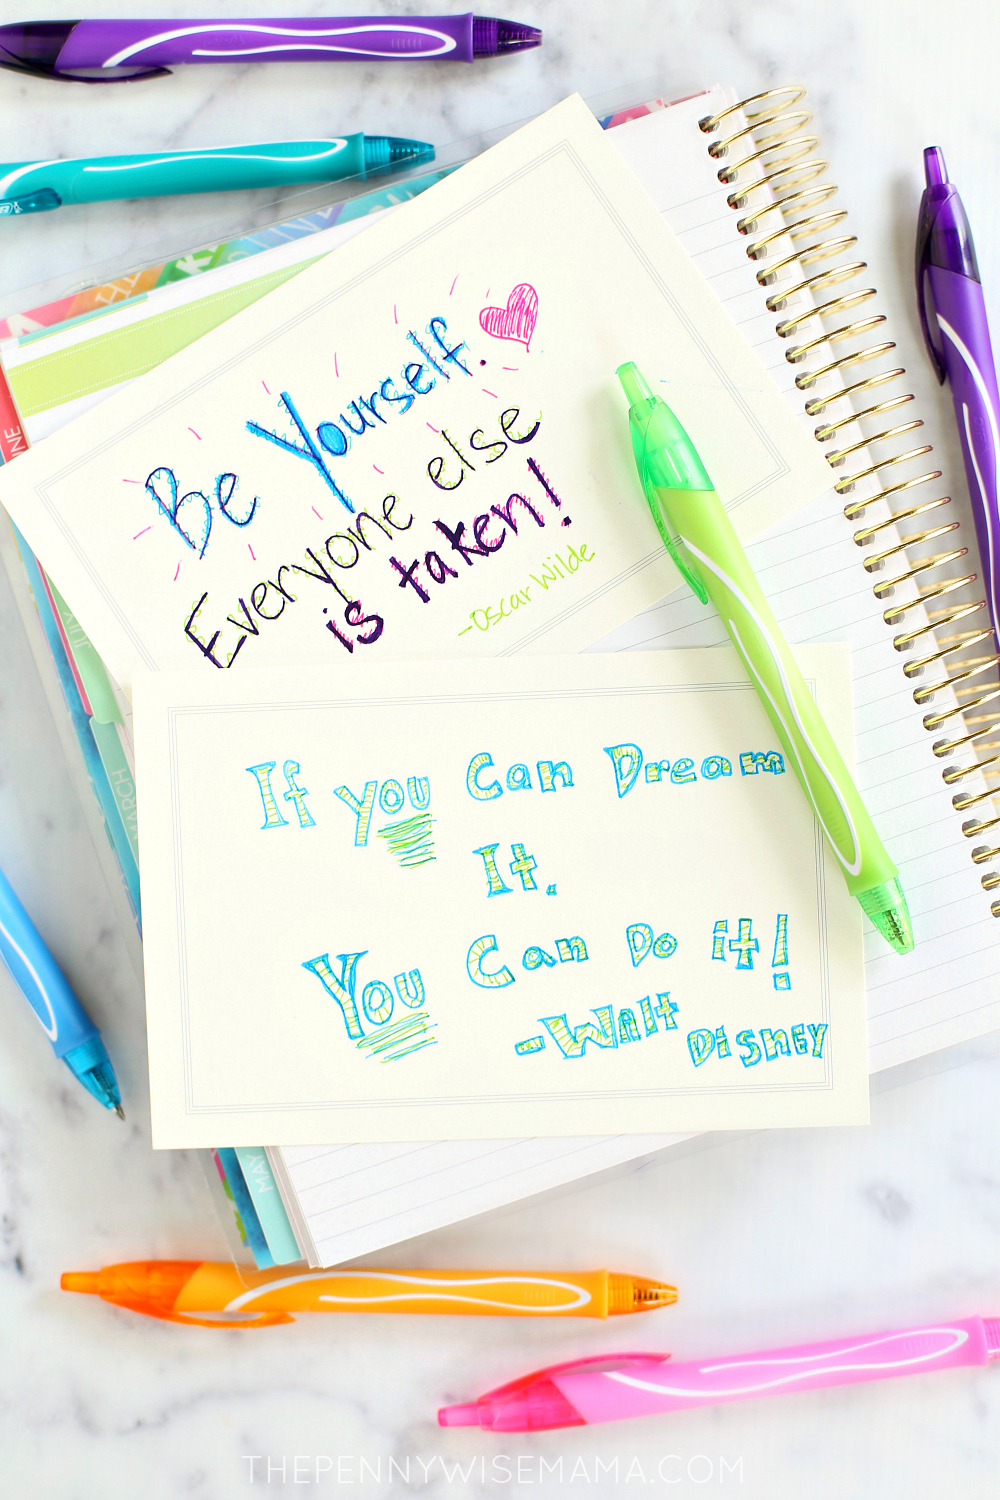 Motivational Back to School Quotes with BIC Gel-ocity Quick Dry Gel Pens